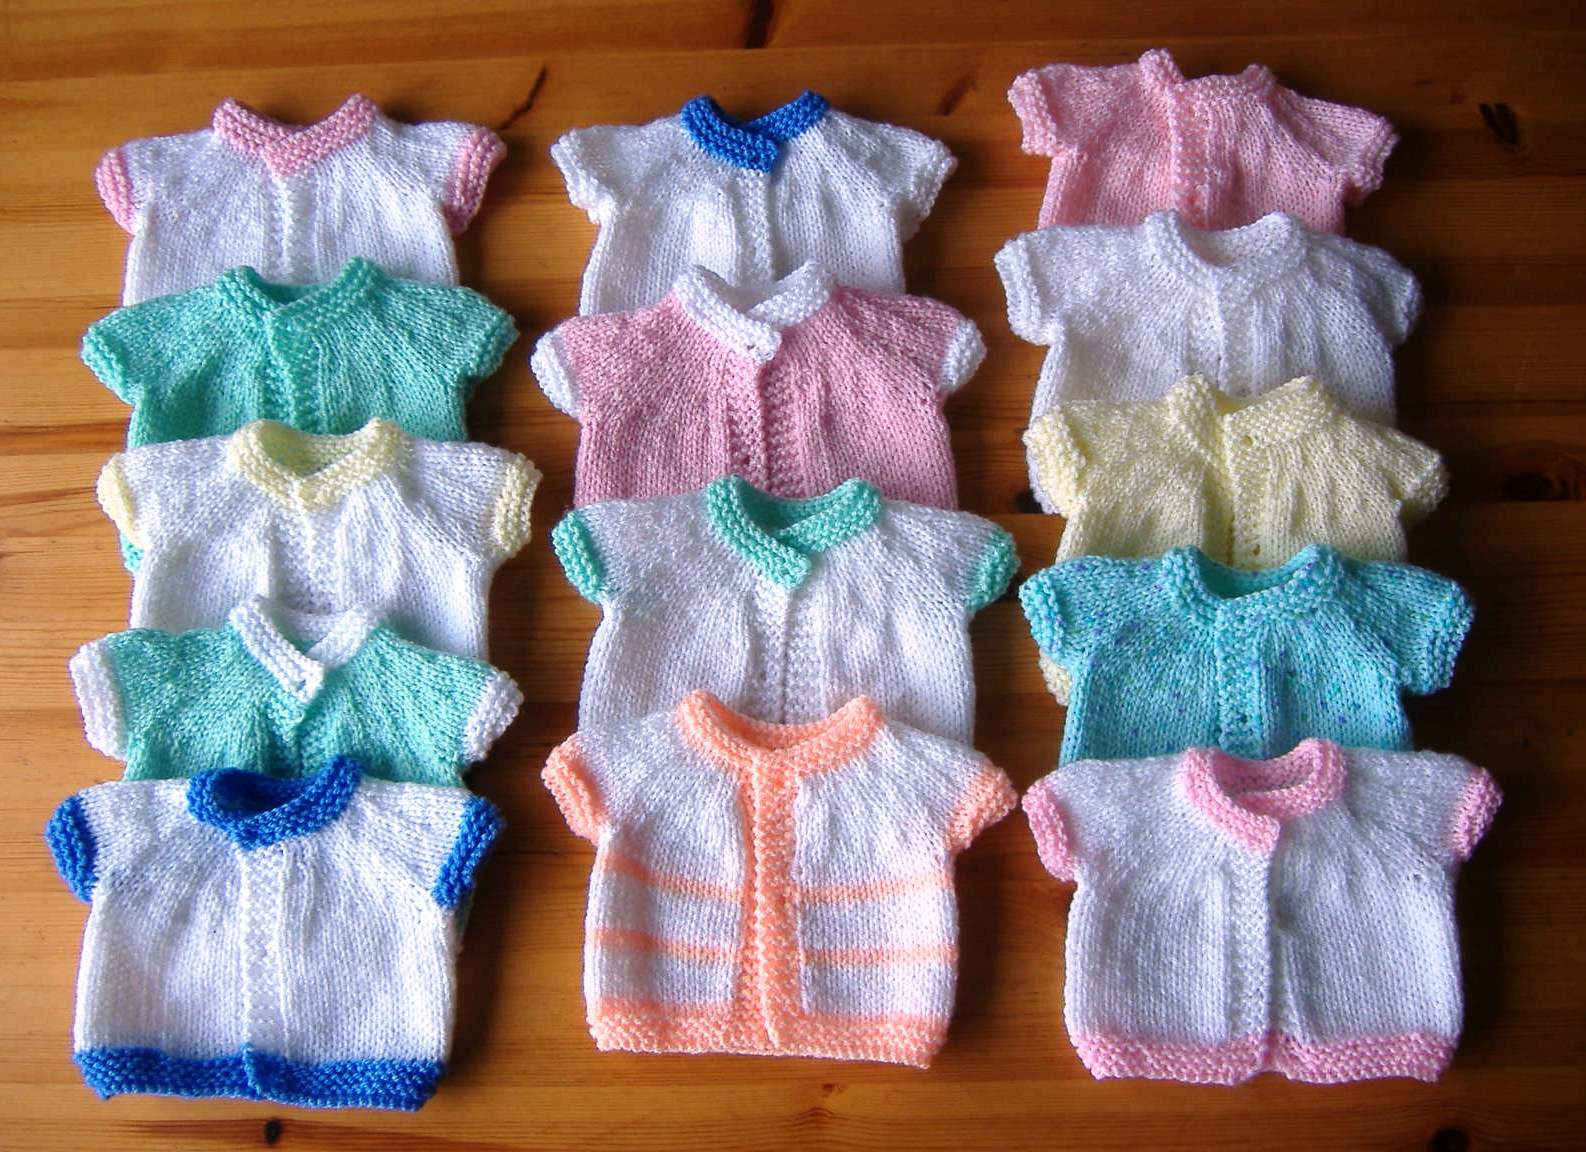 Premature Babies Knitting Patterns : mariannas lazy daisy days: Loving Hands